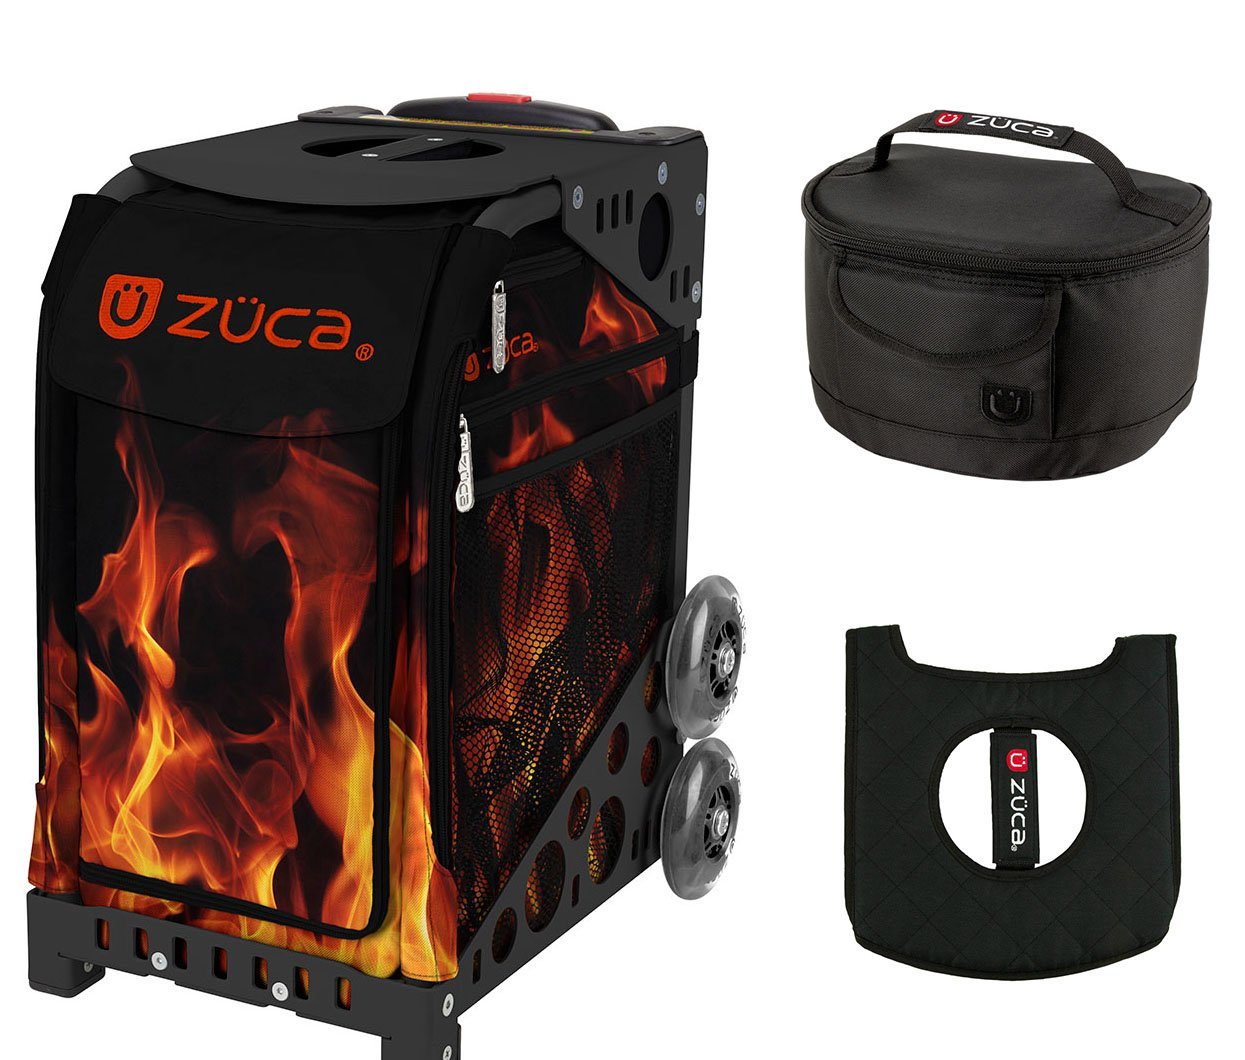 Zuca Sport Bag - Blaze with Gift Lunchbox and Seat Cover (Black Frame) by ZUCA